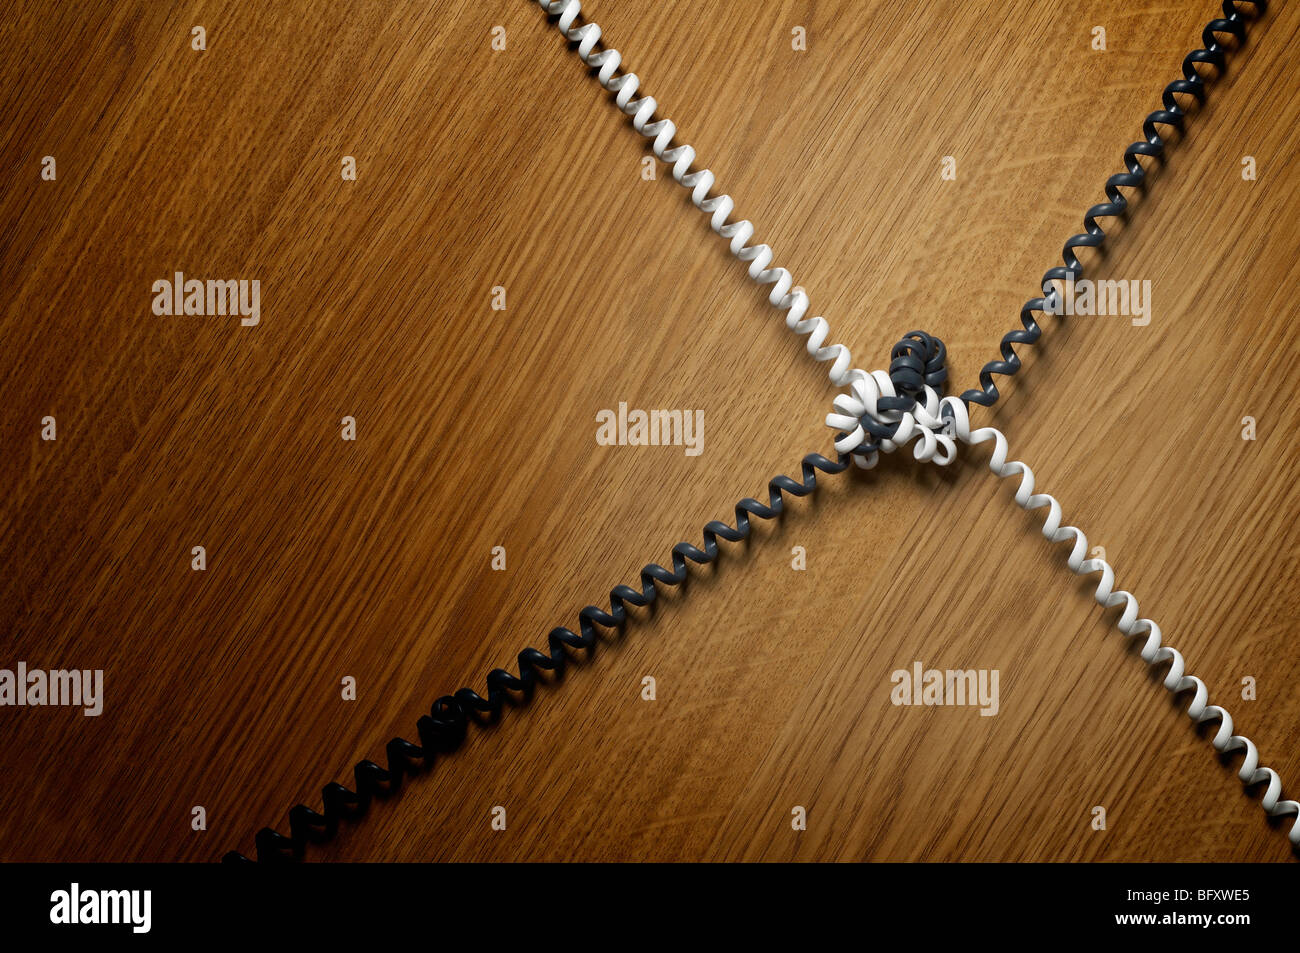 Twisted and knotted telephone cables - Stock Image